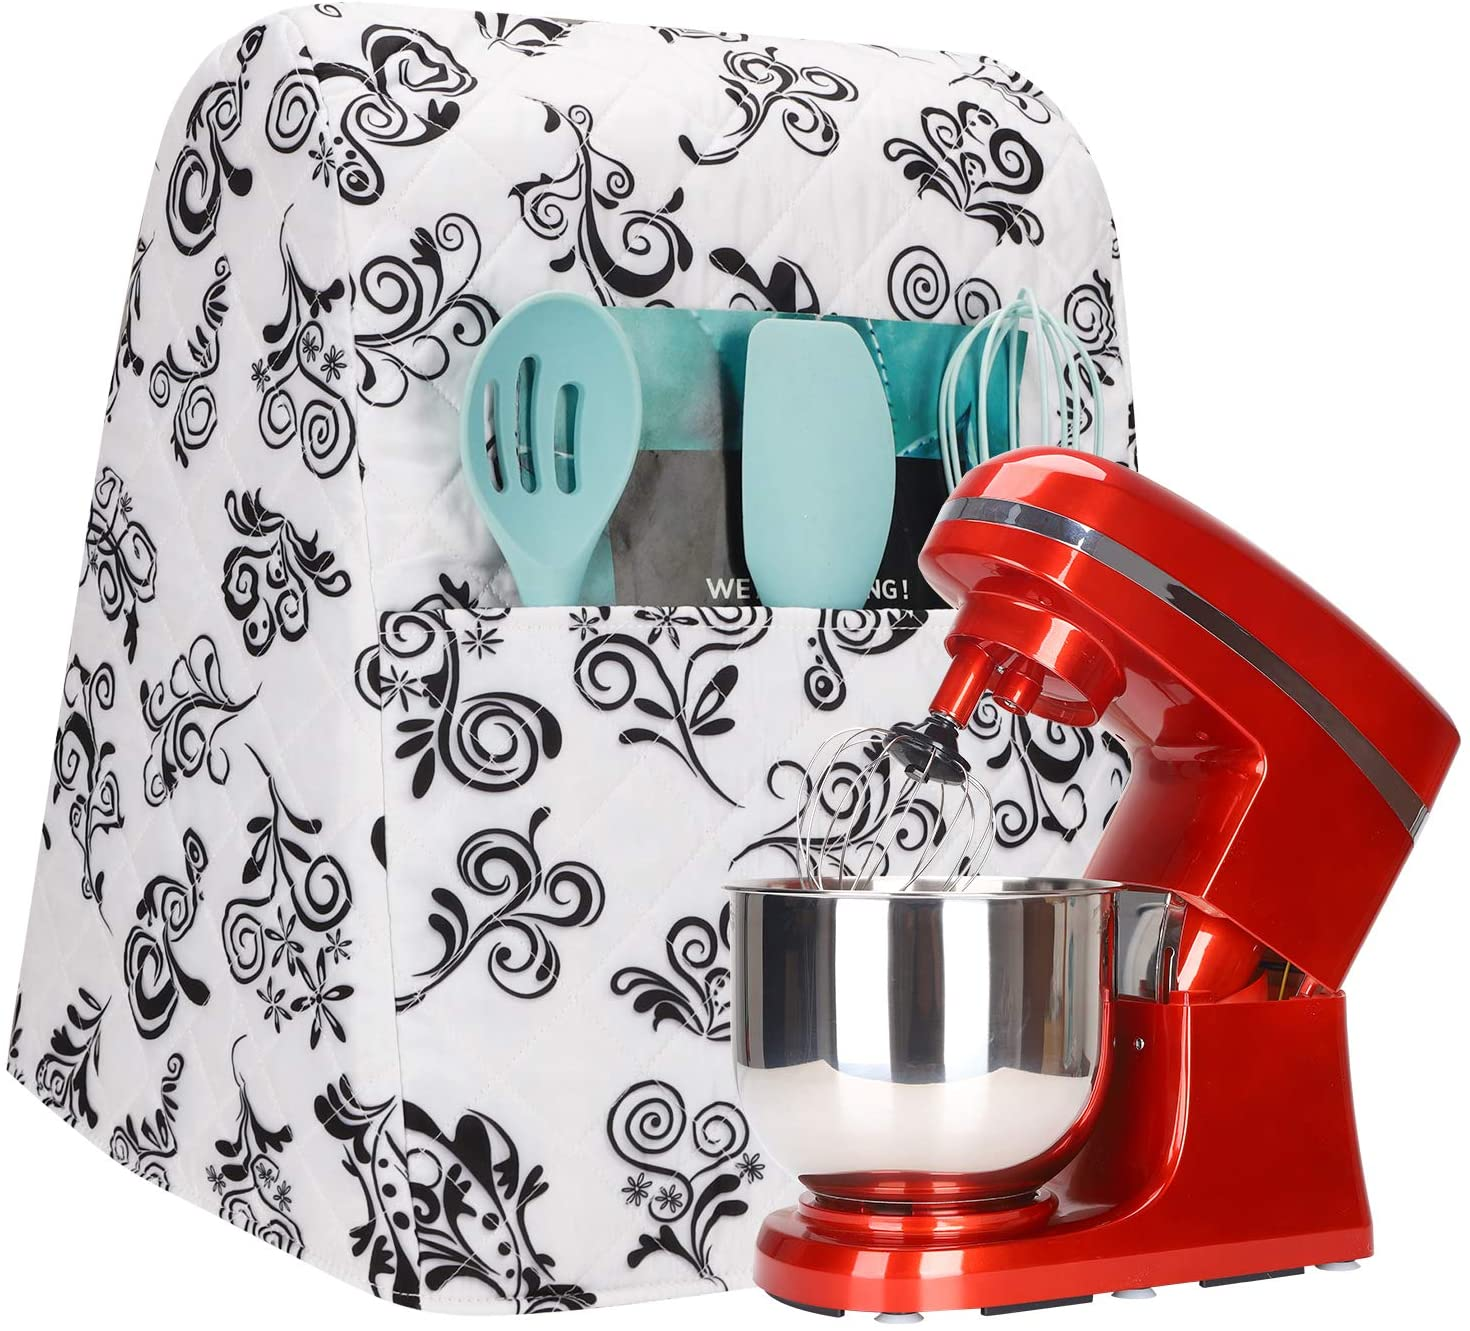 Kitchen Mixer Cover, Thick Kitchen Mixer Protector With Small Compartment, Dust-Proof Stand Mixer Cover, Cover For Kitchen Mixer Perfect Gift For Mom JJZ584